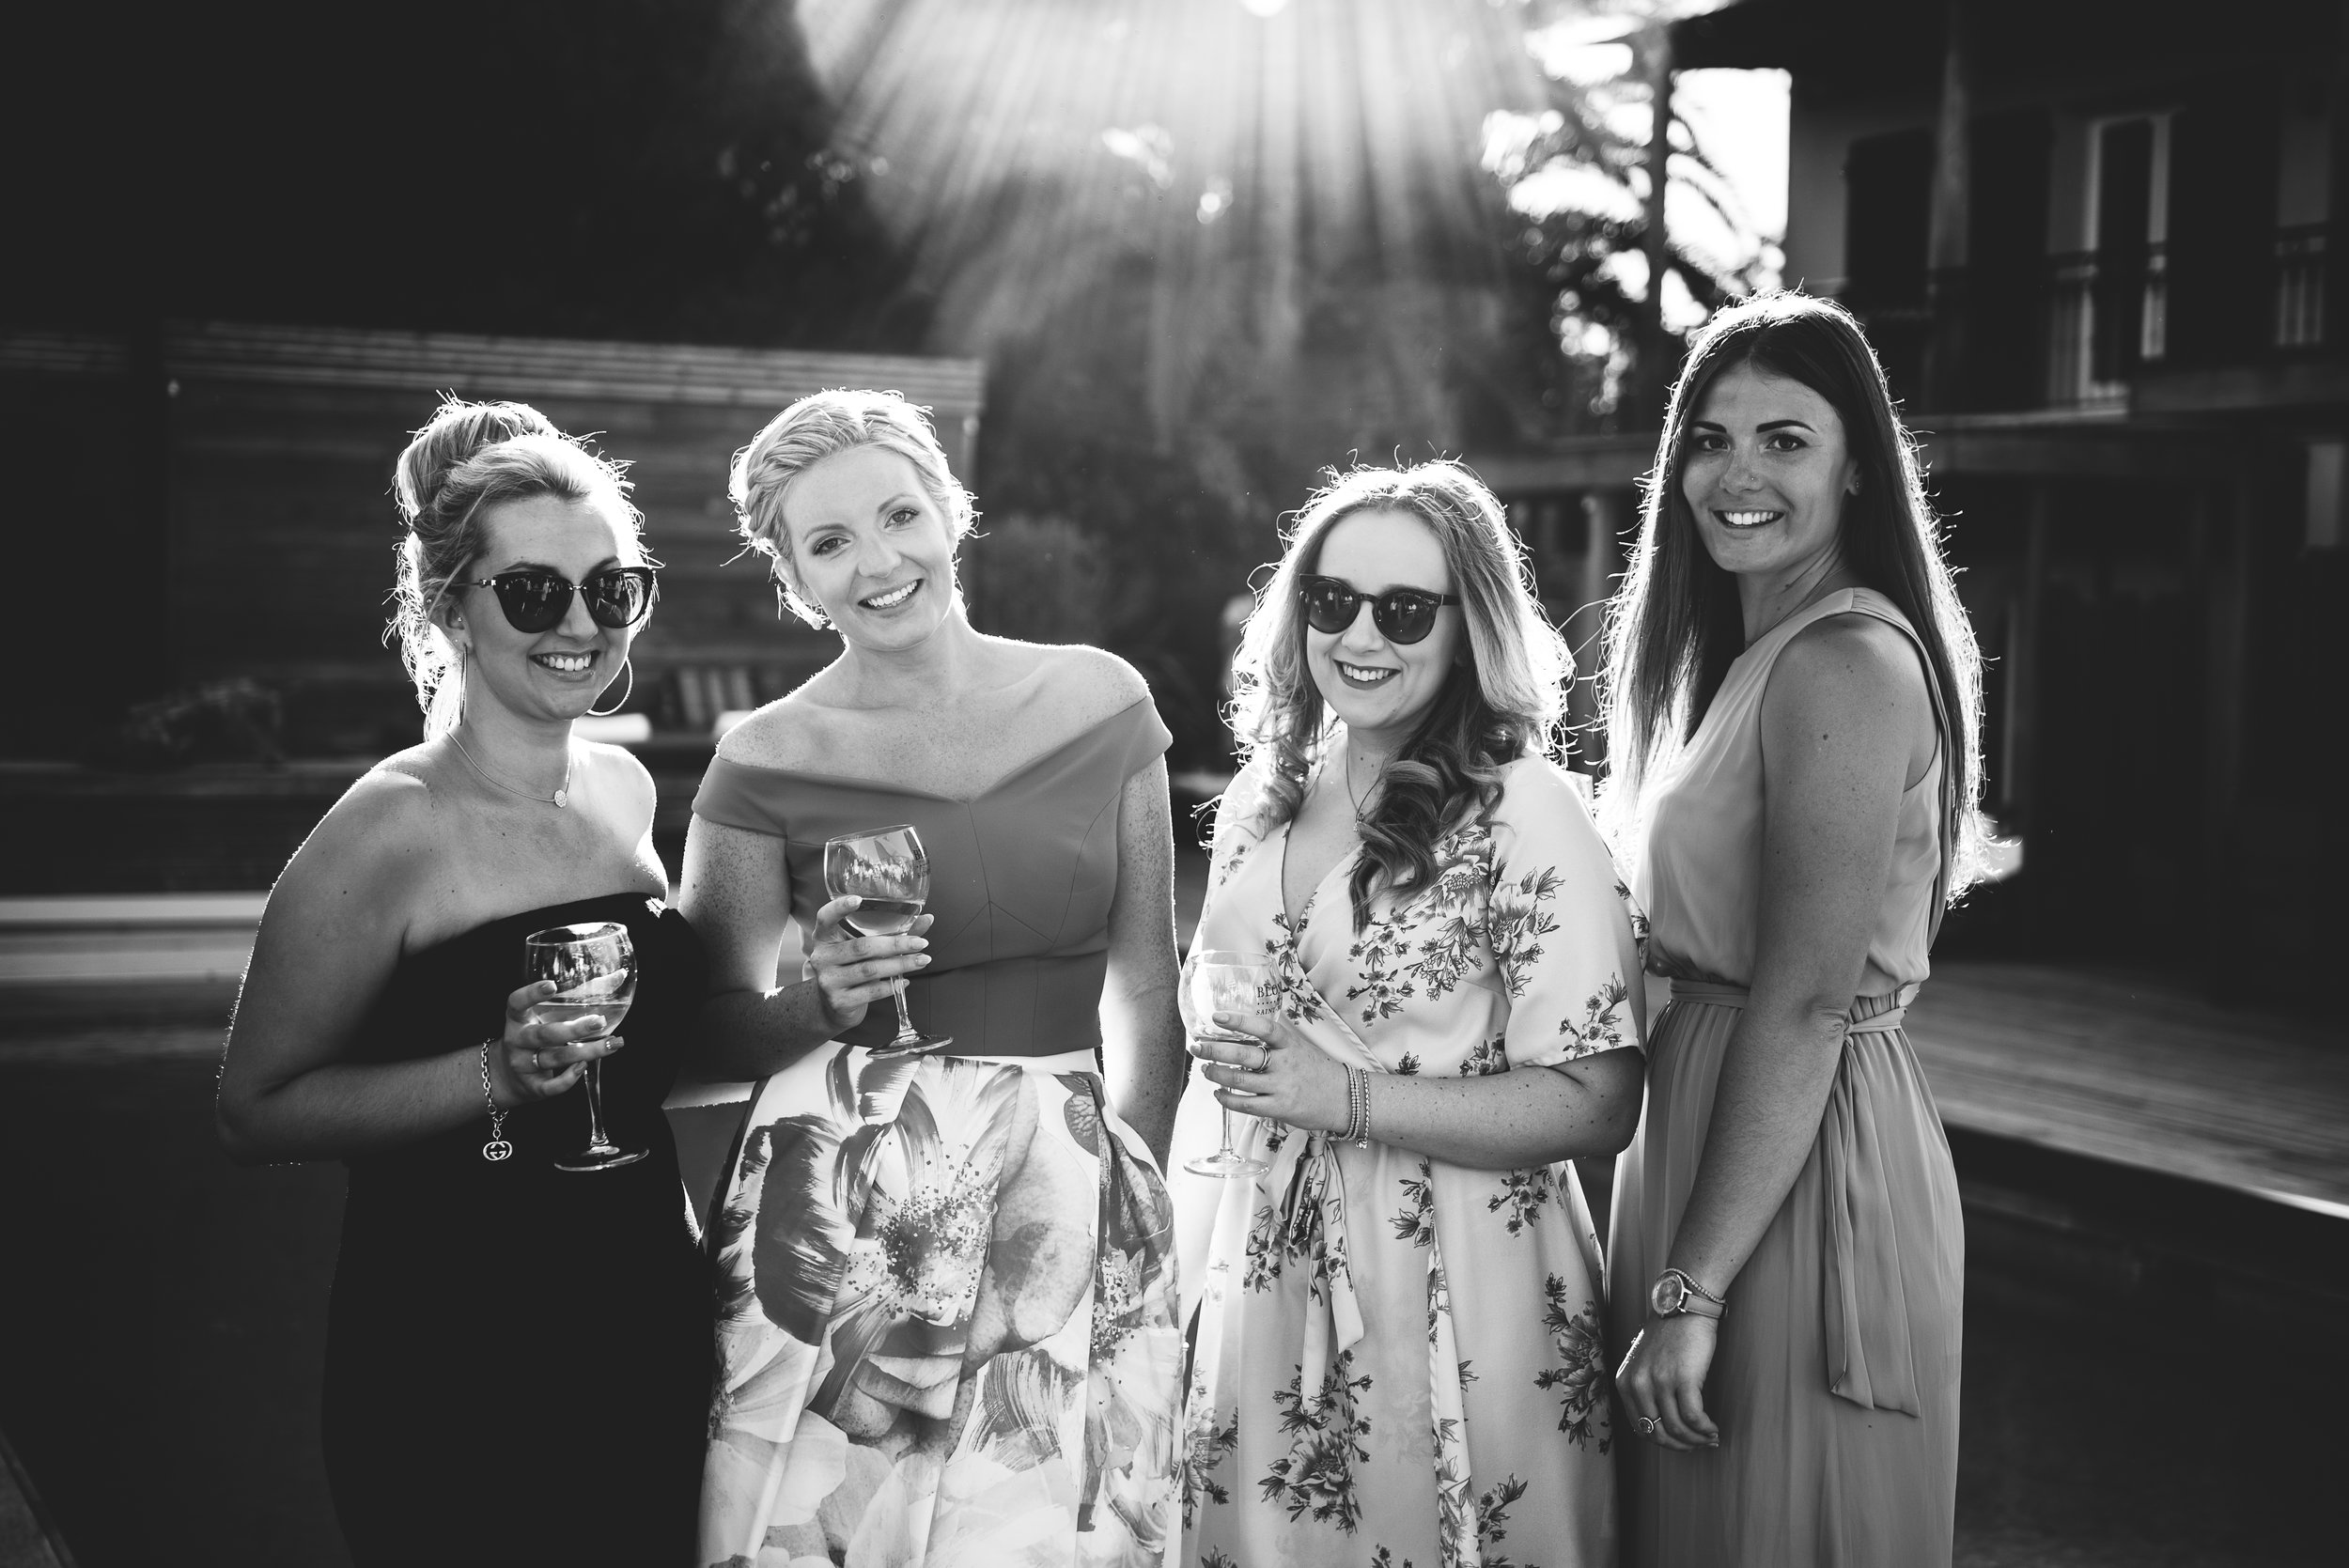 black and white photo of Bride-to-be with her friends